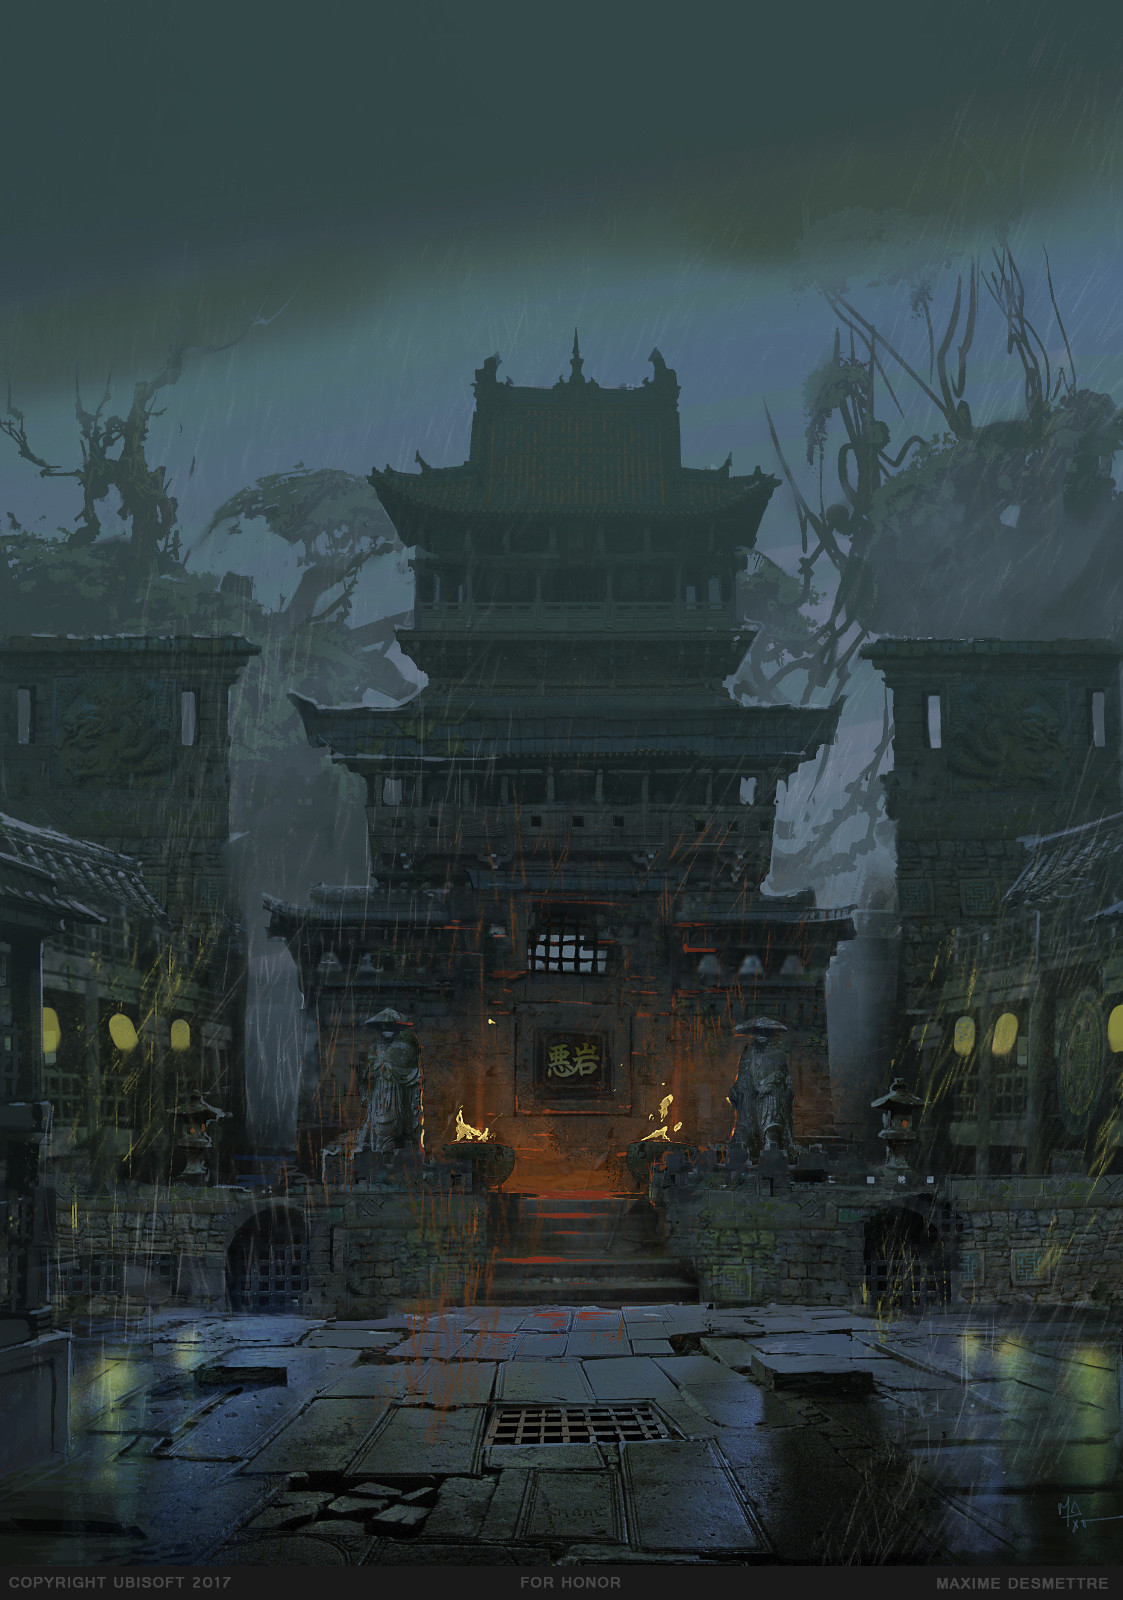 For Honor : Fighting Arena environment study (2015) Photoshop